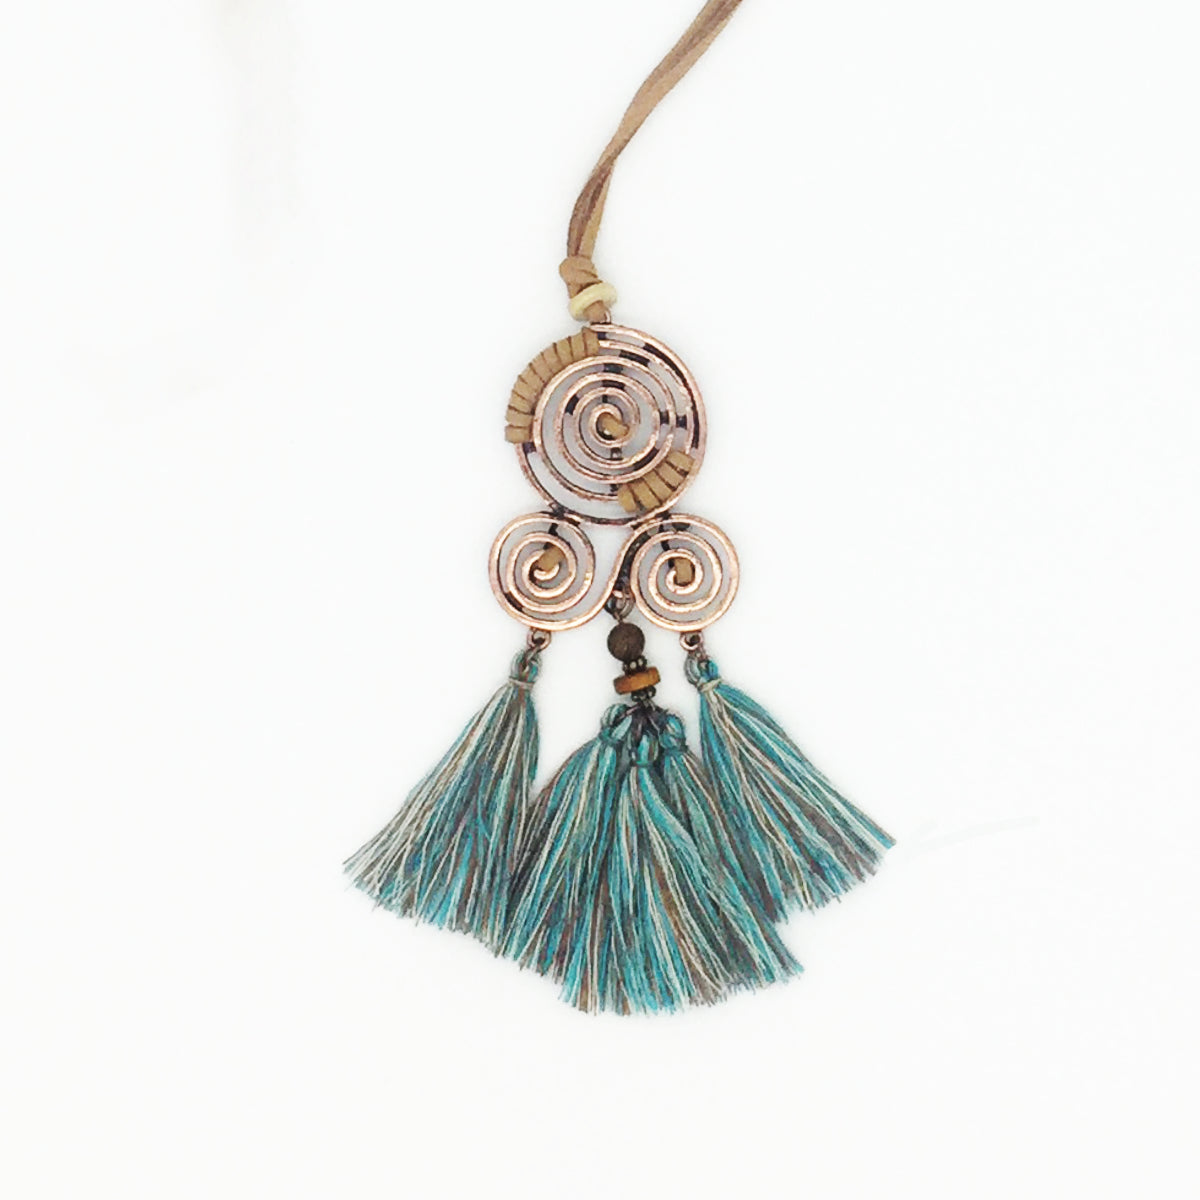 Boho Chic Tassel Necklace